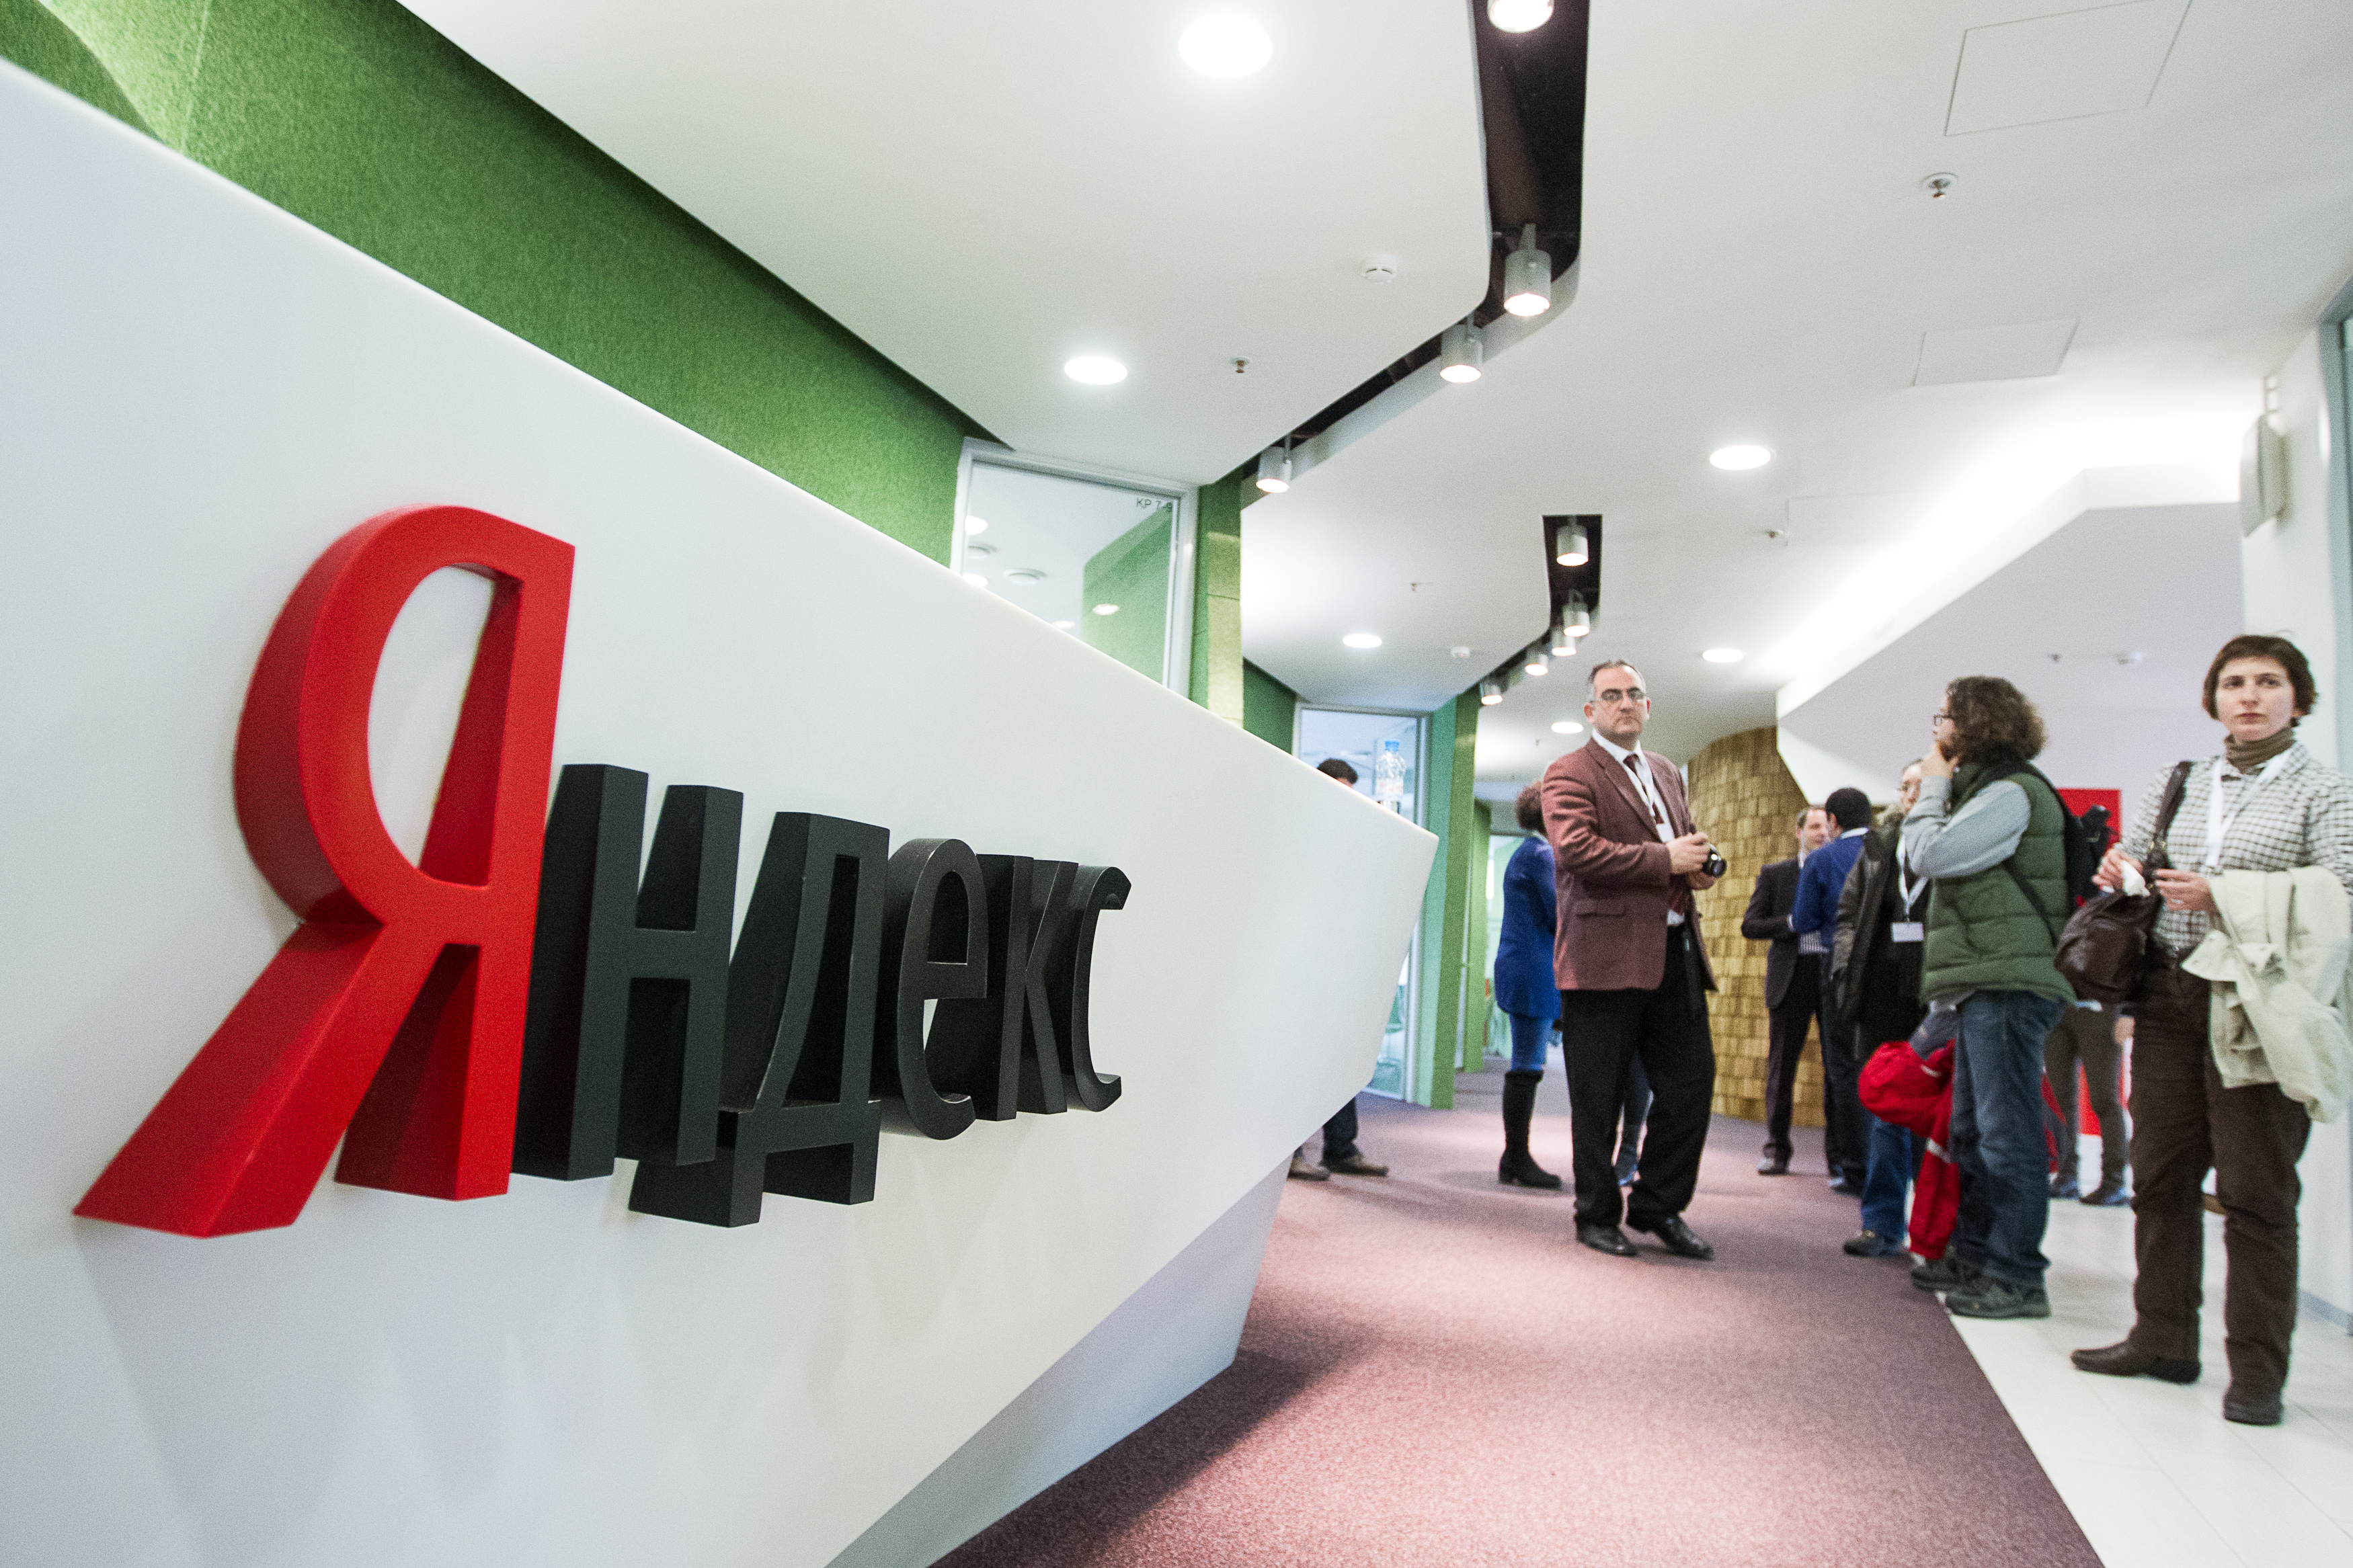 Yandex headquarters in Moscow, Russia